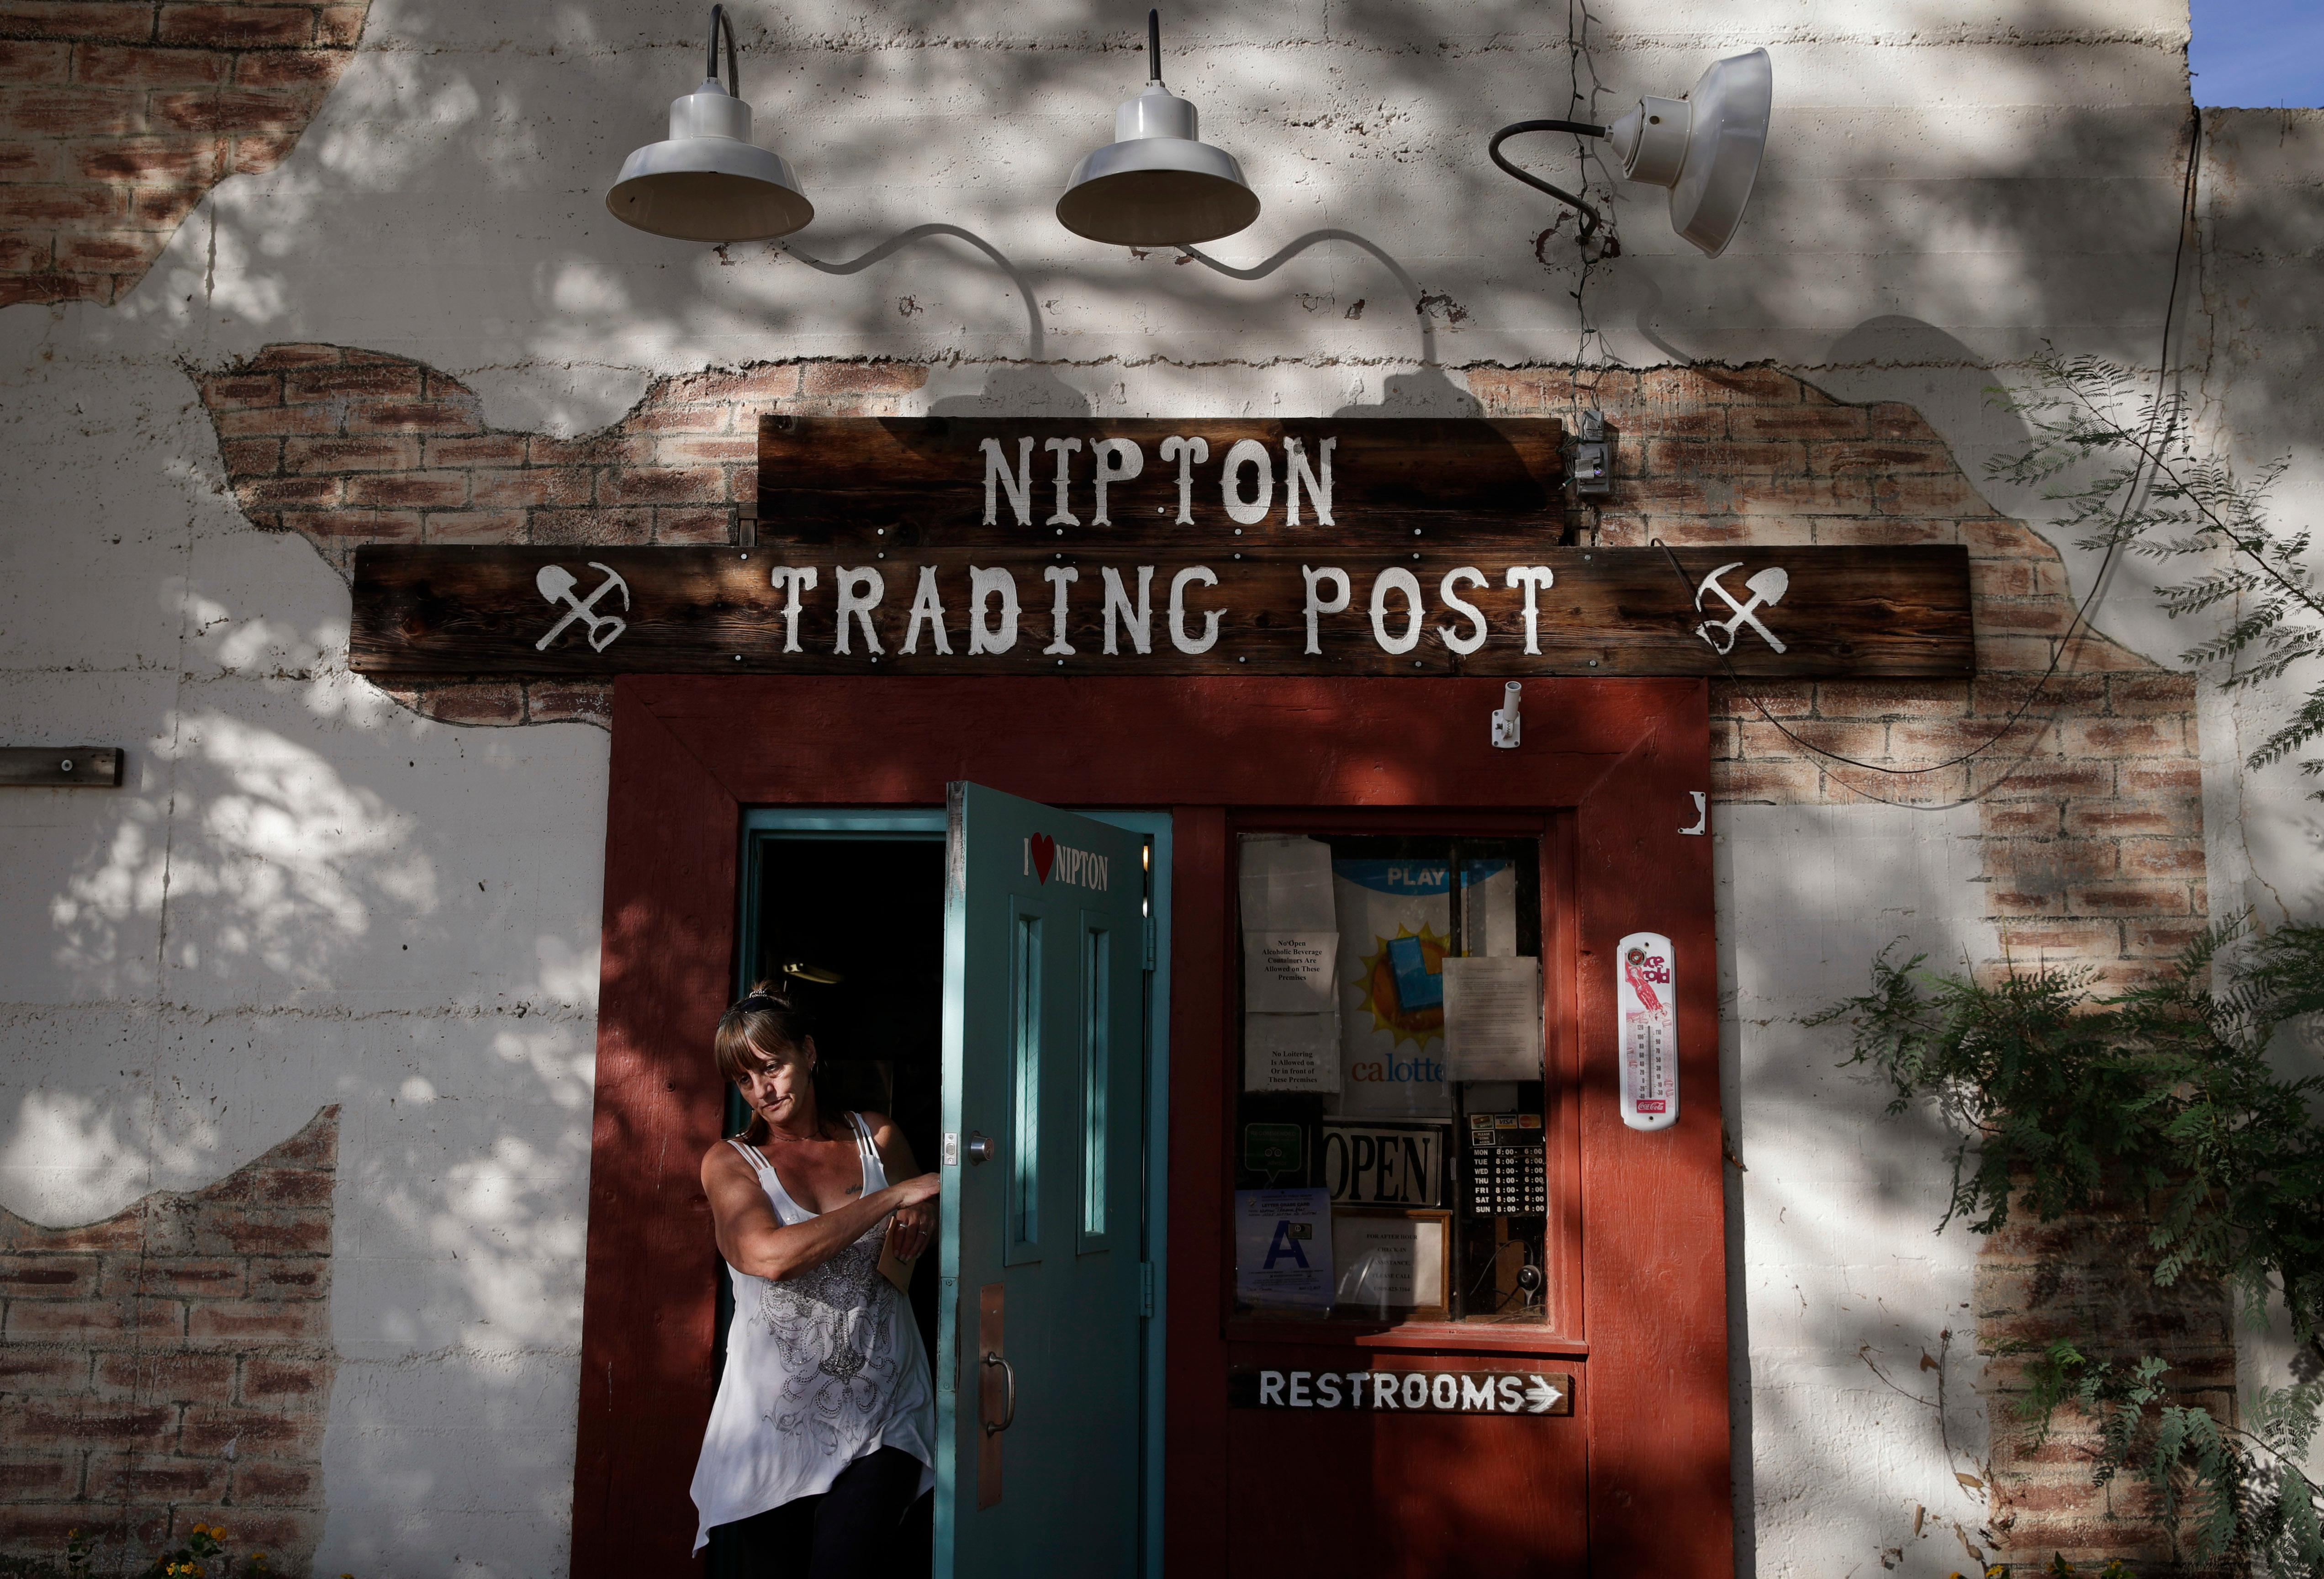 A woman leaves the Nipton Trading Post, Thursday, Aug. 3, 2017, in Nipton, Calif. American Green Inc., one of the nation's largest cannabis companies, announced it has bought the entire 80 acre California desert town of Nipton. (AP Photo/John Locher)